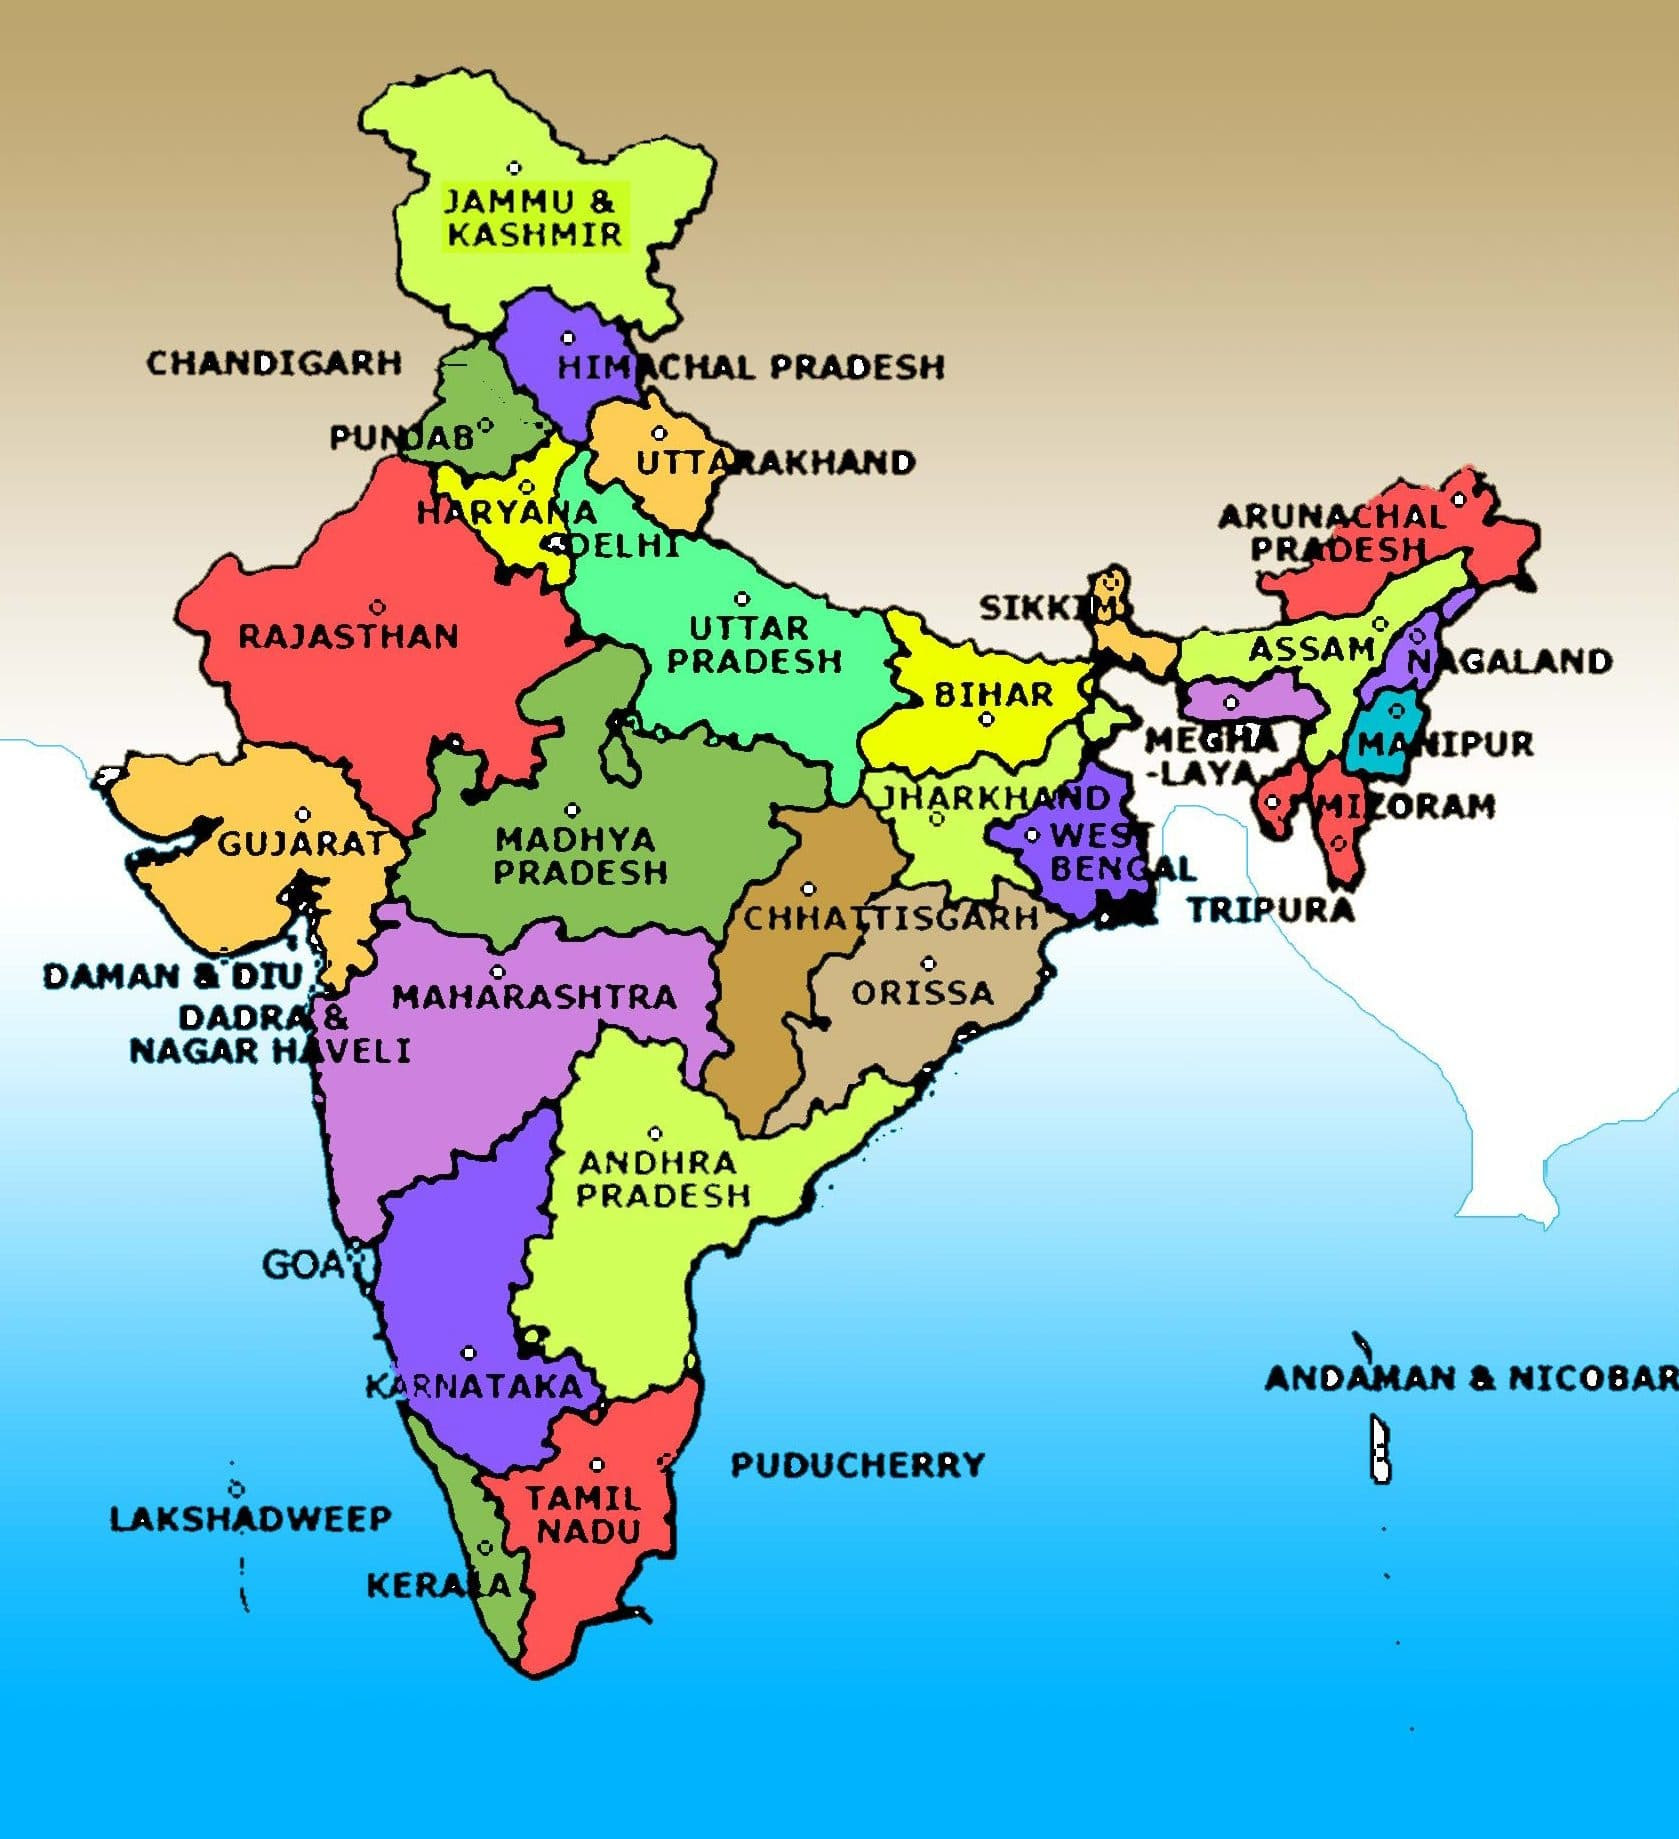 india map hd photo 25 New Indian Map Hd Image india map hd photo